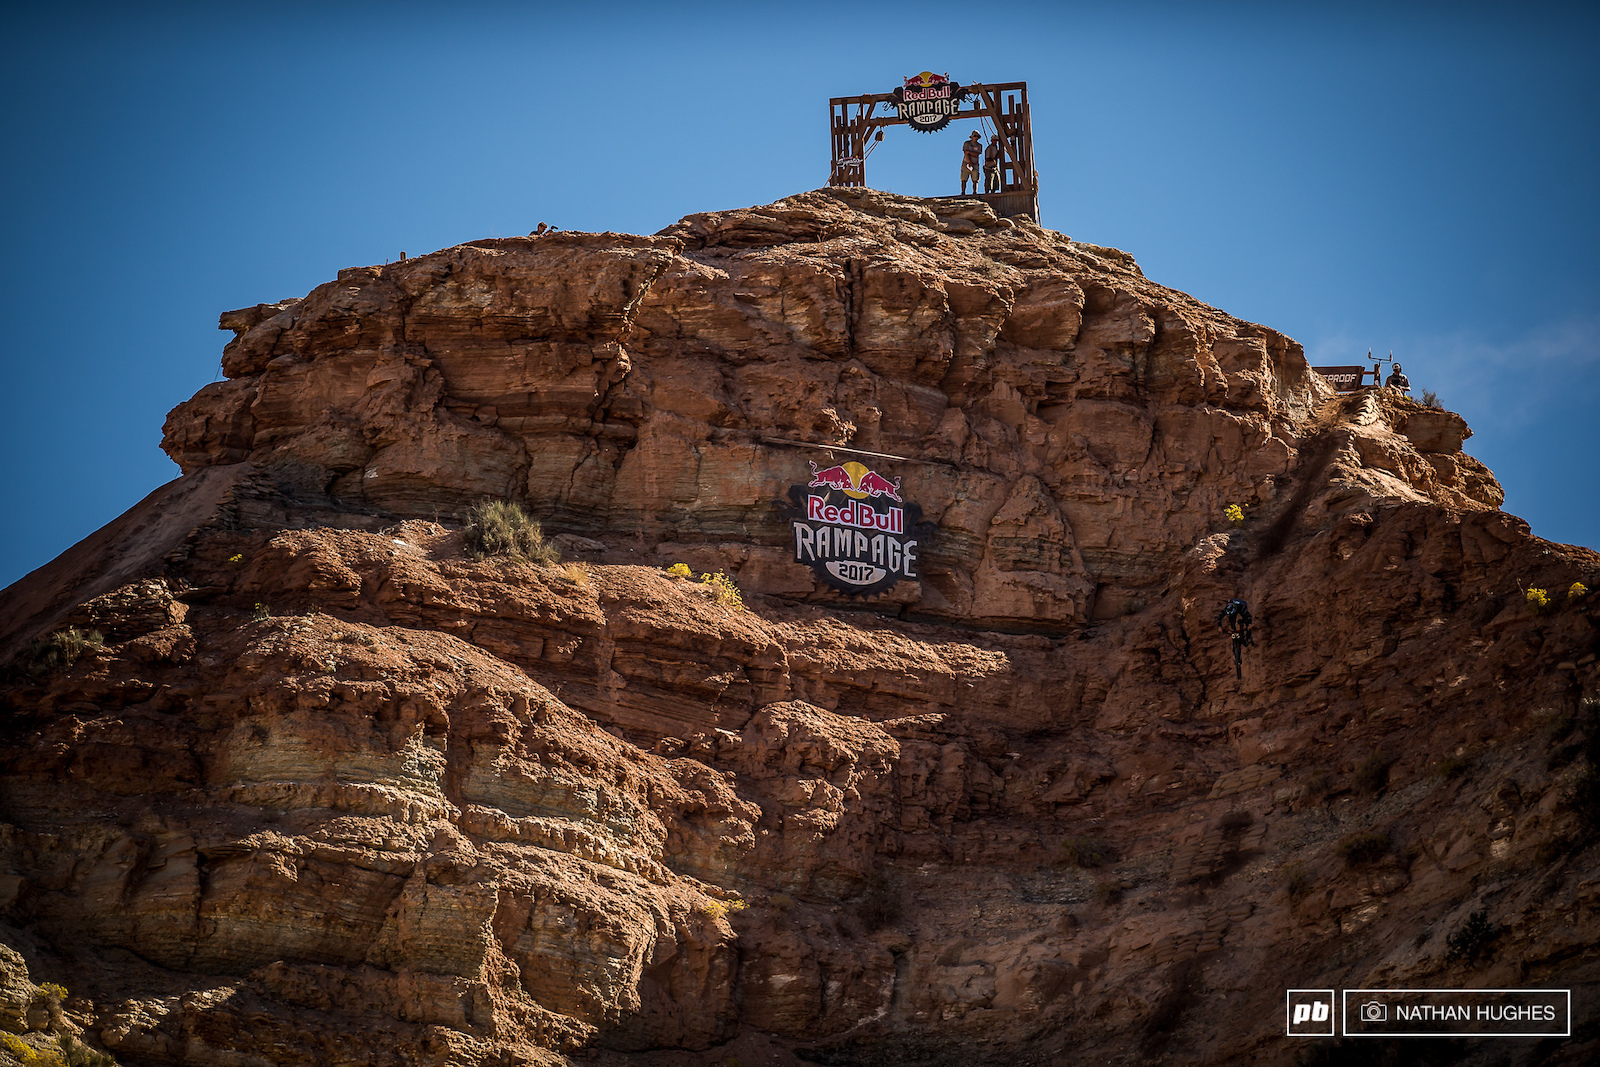 Zink tucks into the most heinously steep and prolonged chute in Rampage history.